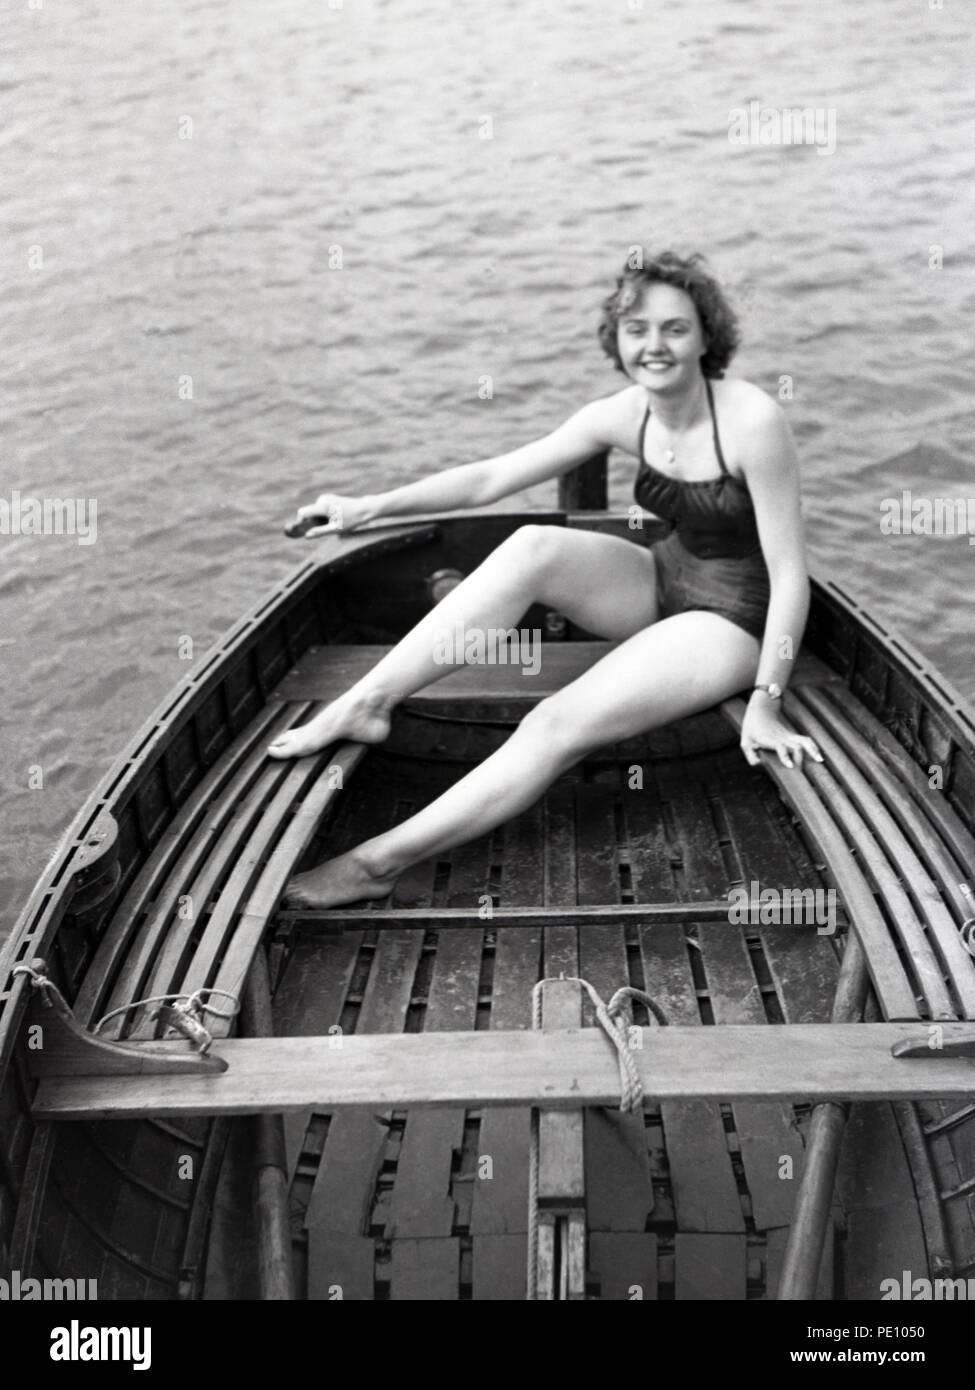 Attractive young lady sitting in rear of small dinghy - Stock Image